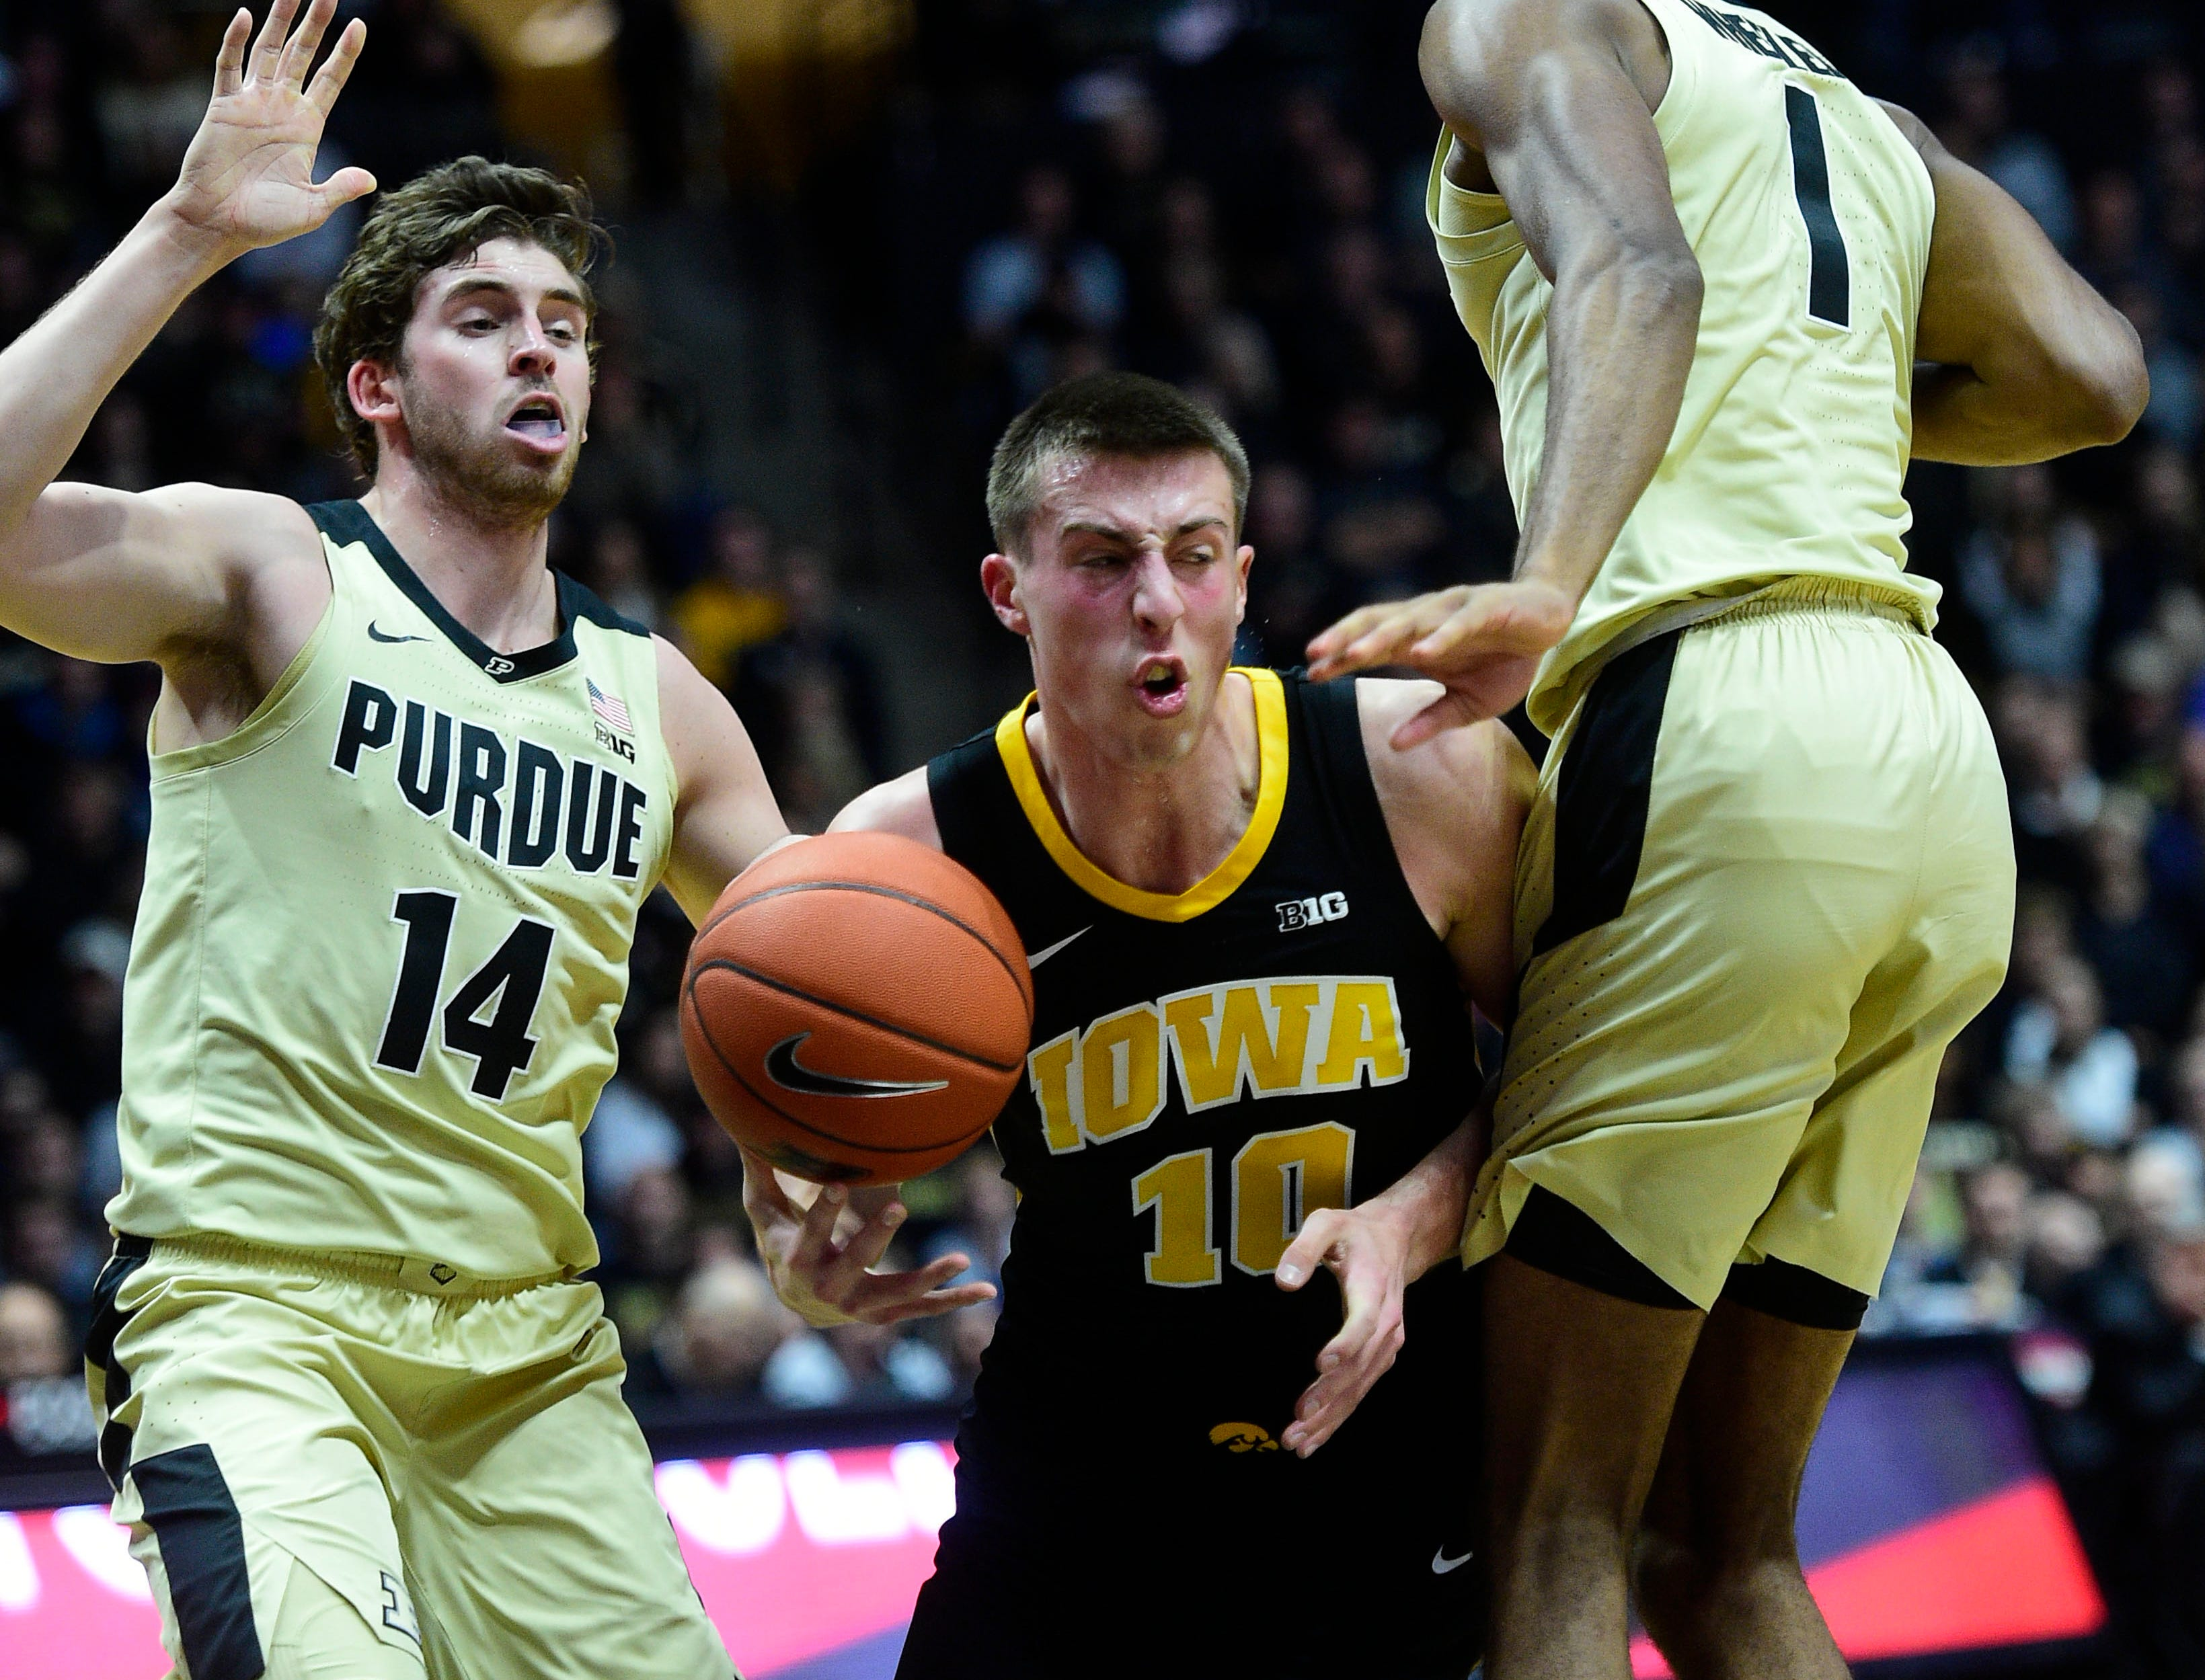 Jan 3, 2019; West Lafayette, IN, USA;  Iowa Hawkeyes guard Joe Weiskamp  (10) controls the ball between Purdue Boilermakers guard Ryan Cline (14) and forward Aaron Wheeler (1) in the first half at Mackey Arena. Mandatory Credit: Thomas J. Russo-USA TODAY Sports